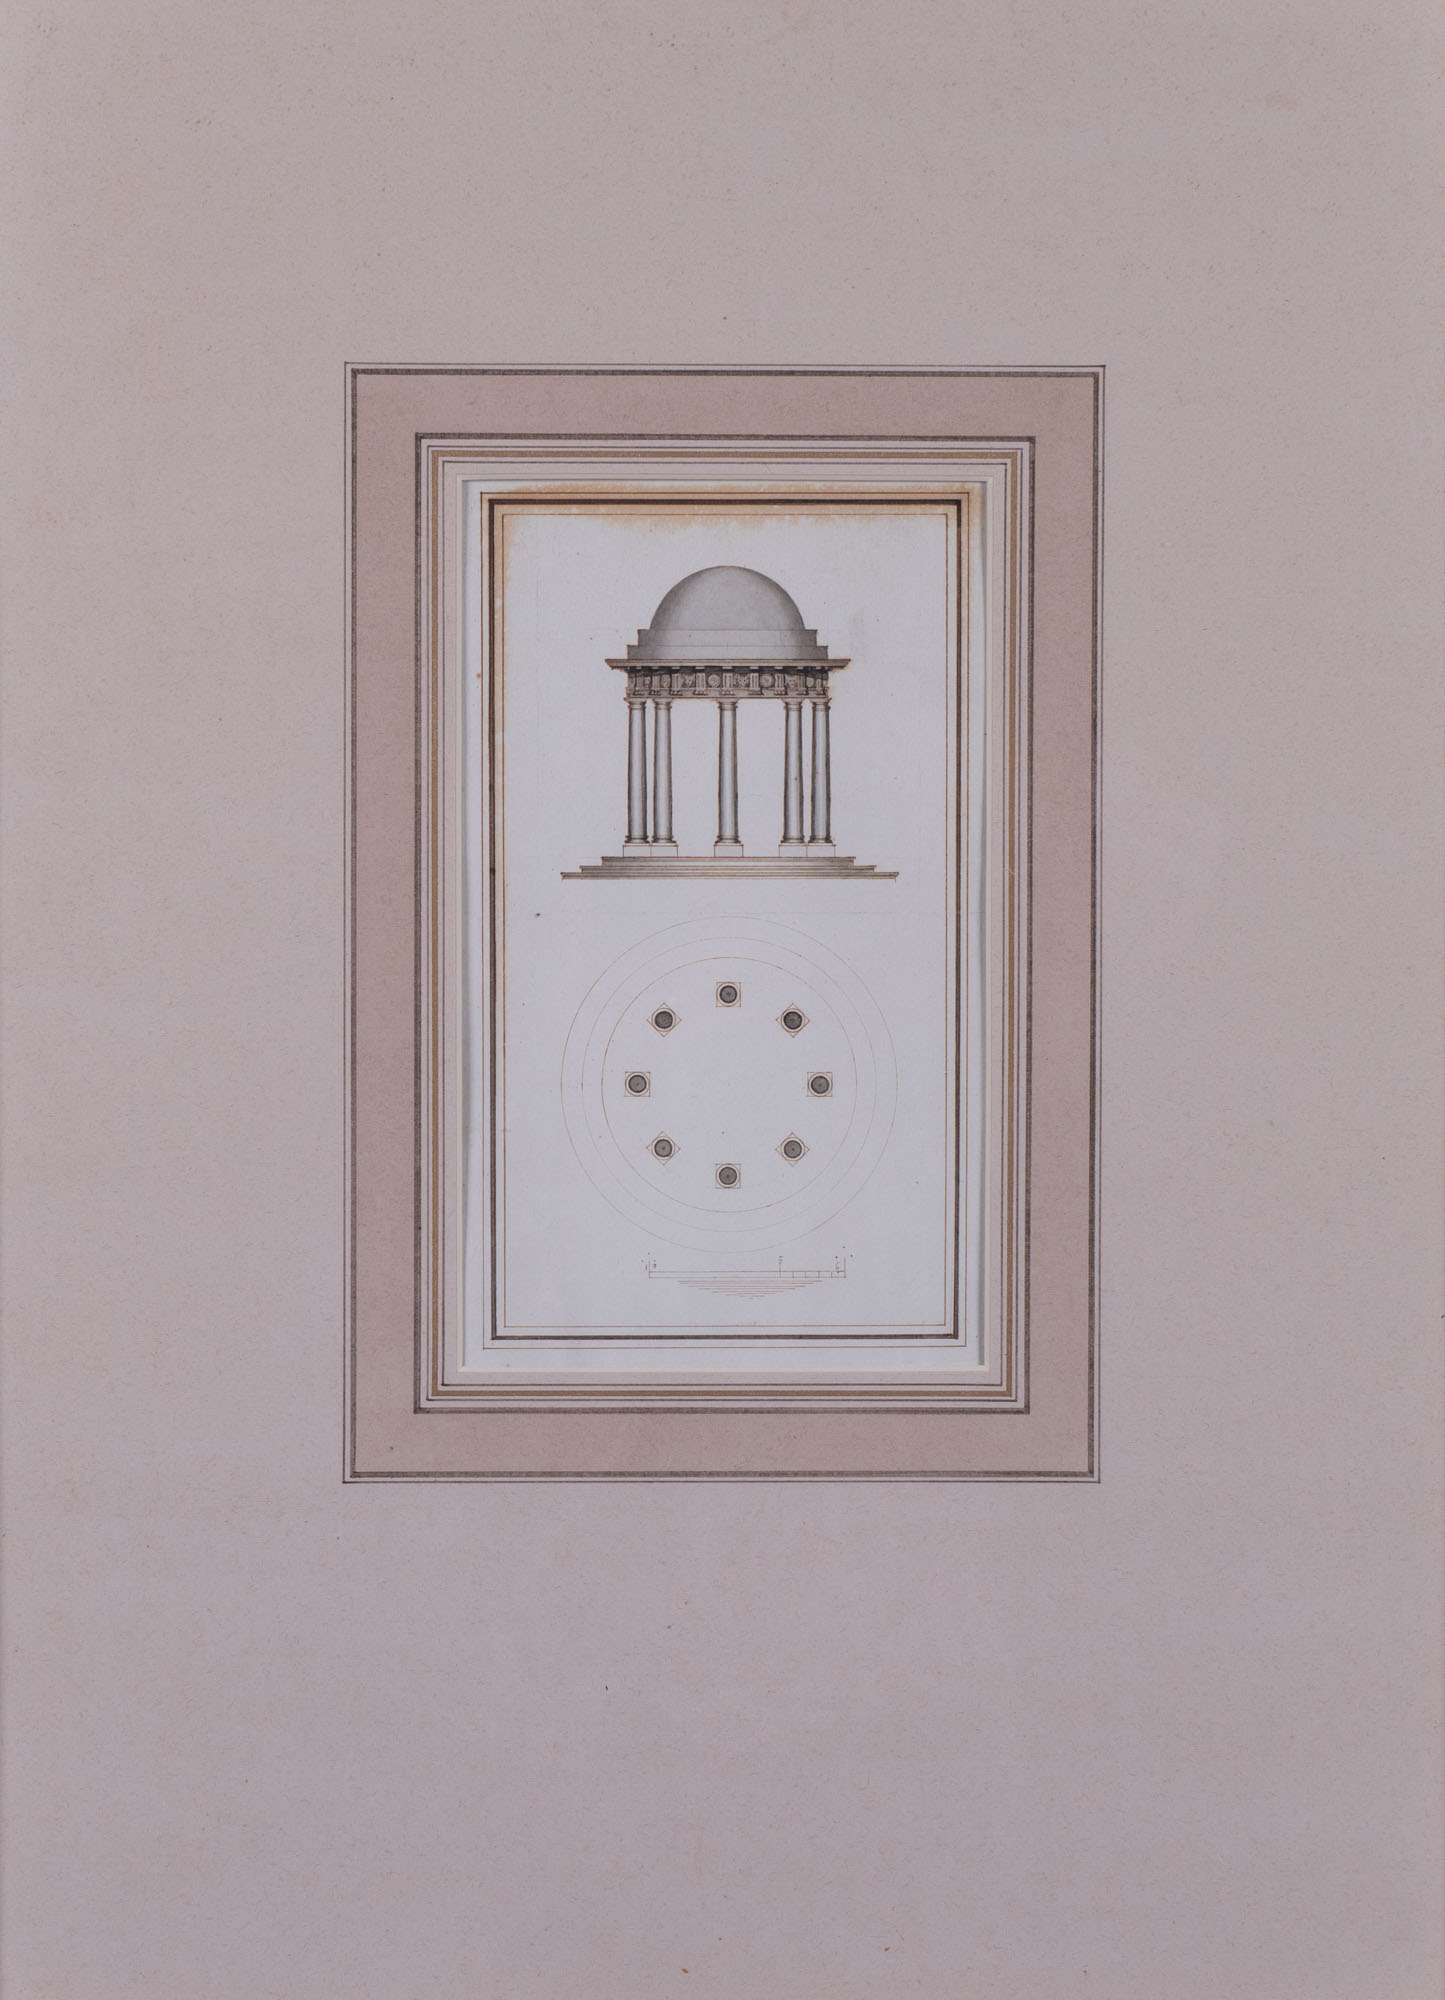 Plan and elevation for a Doric temple, English School, circa 1760.